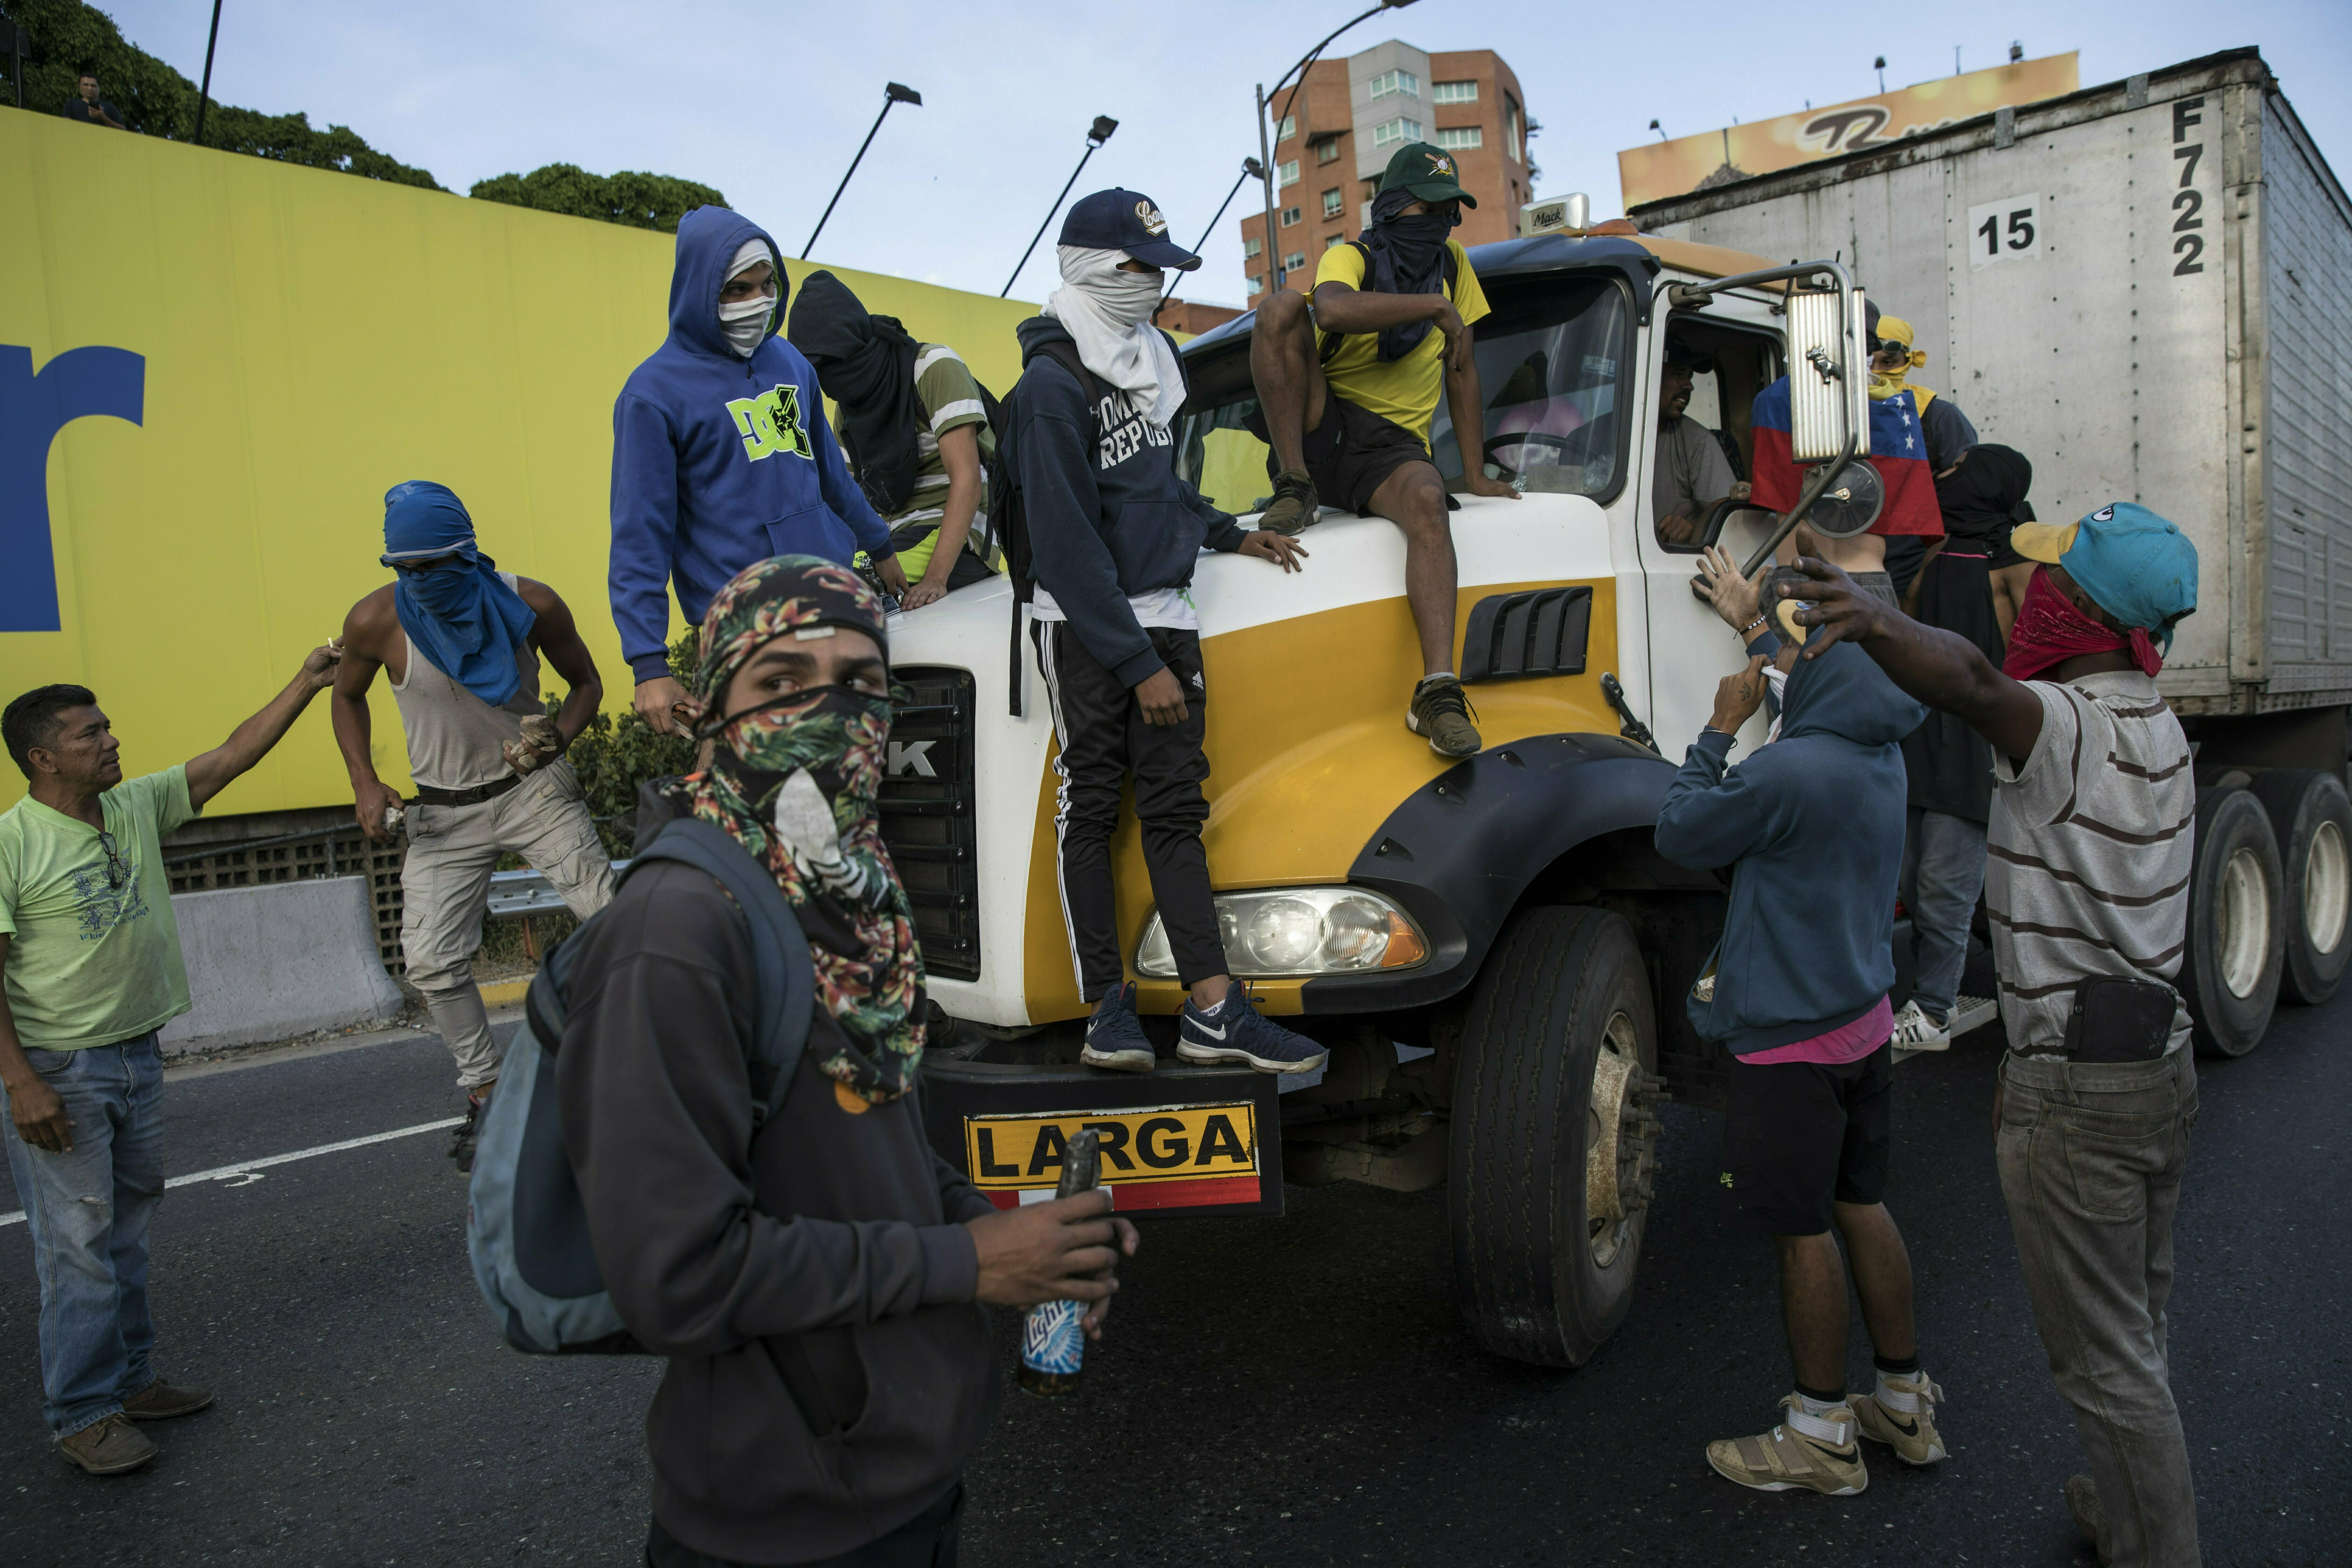 Anti-government protesters stop a truck while blocking a highway with a small group of demonstrators who were returning from a peaceful demonstration called by self-declared interim president Juan Guaido to demand the resignation of President Nicolas Maduro, in Caracas, Venezuela, Saturday, Feb. 2, 2019. (AP Photo/Rodrigo Abd)